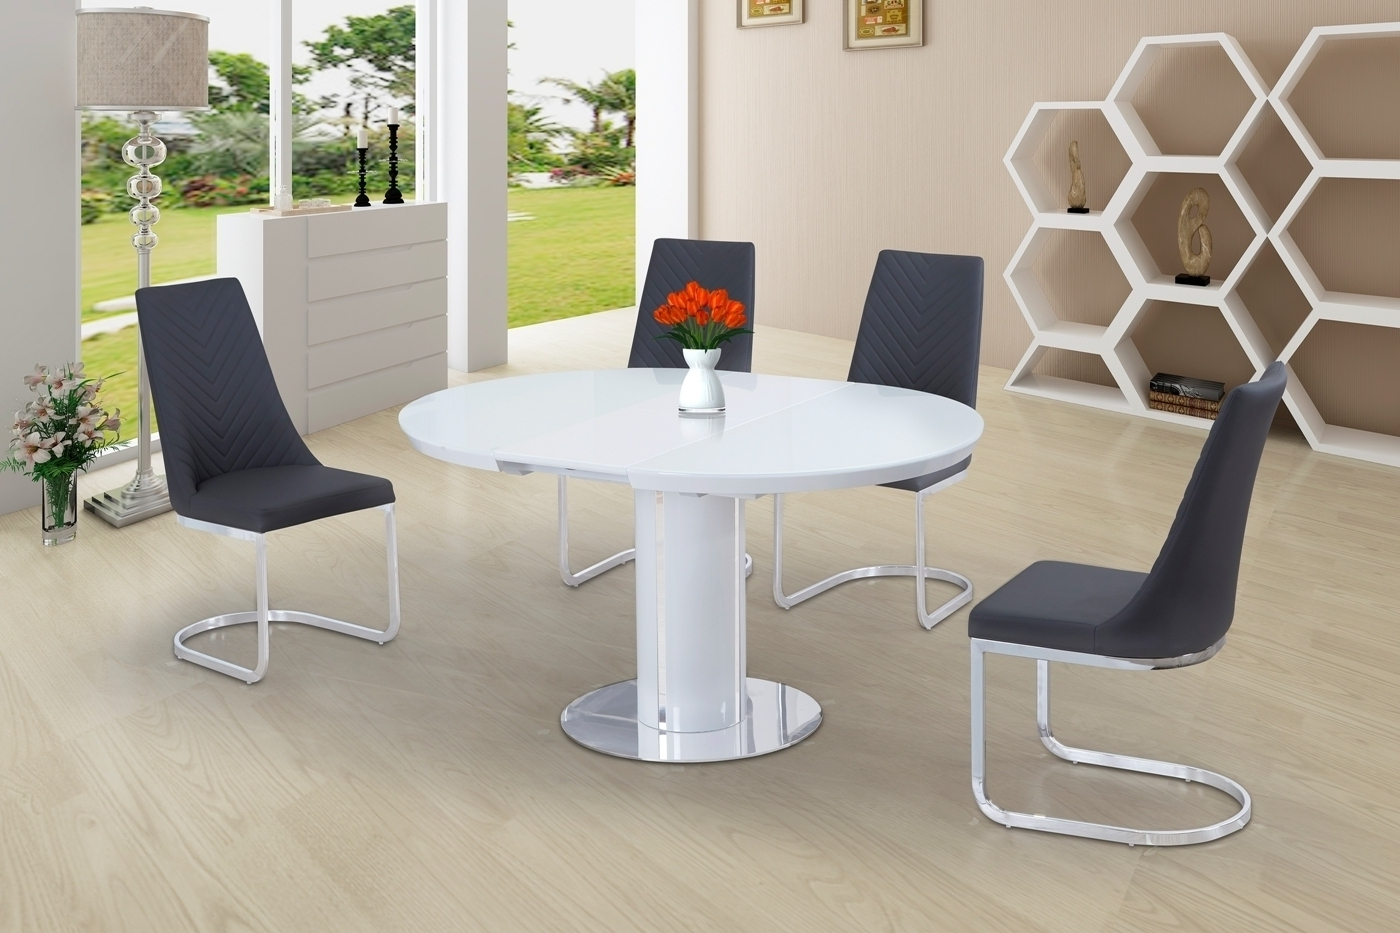 Best And Newest White Gloss Dining Room Furniture With Round White Glass High Gloss Dining Table And 6 Grey Chairs Set (View 4 of 25)